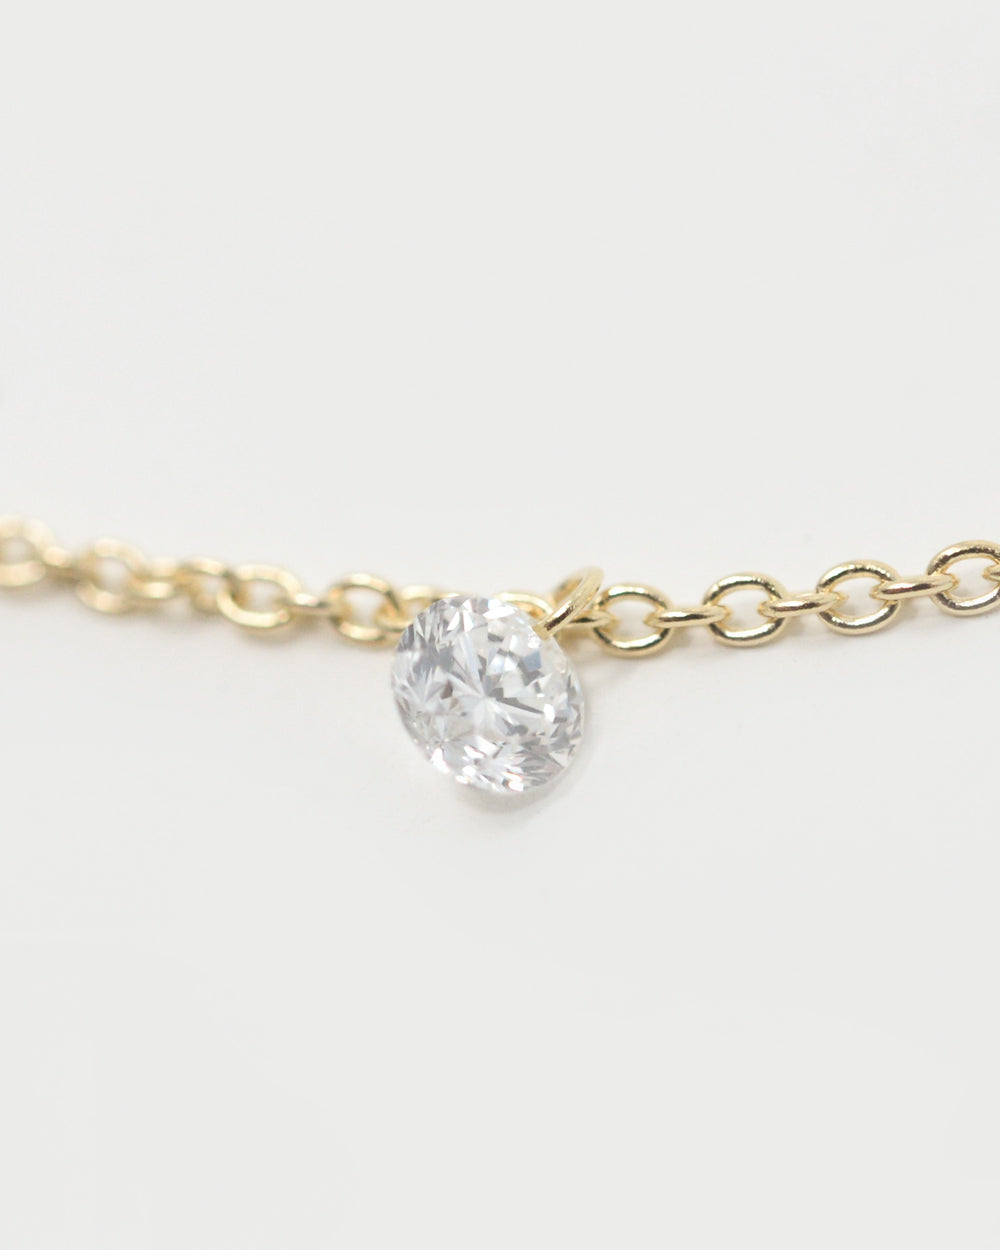 SYCAMORE FIVE STONE FLOATING DIAMOND NECKLACE